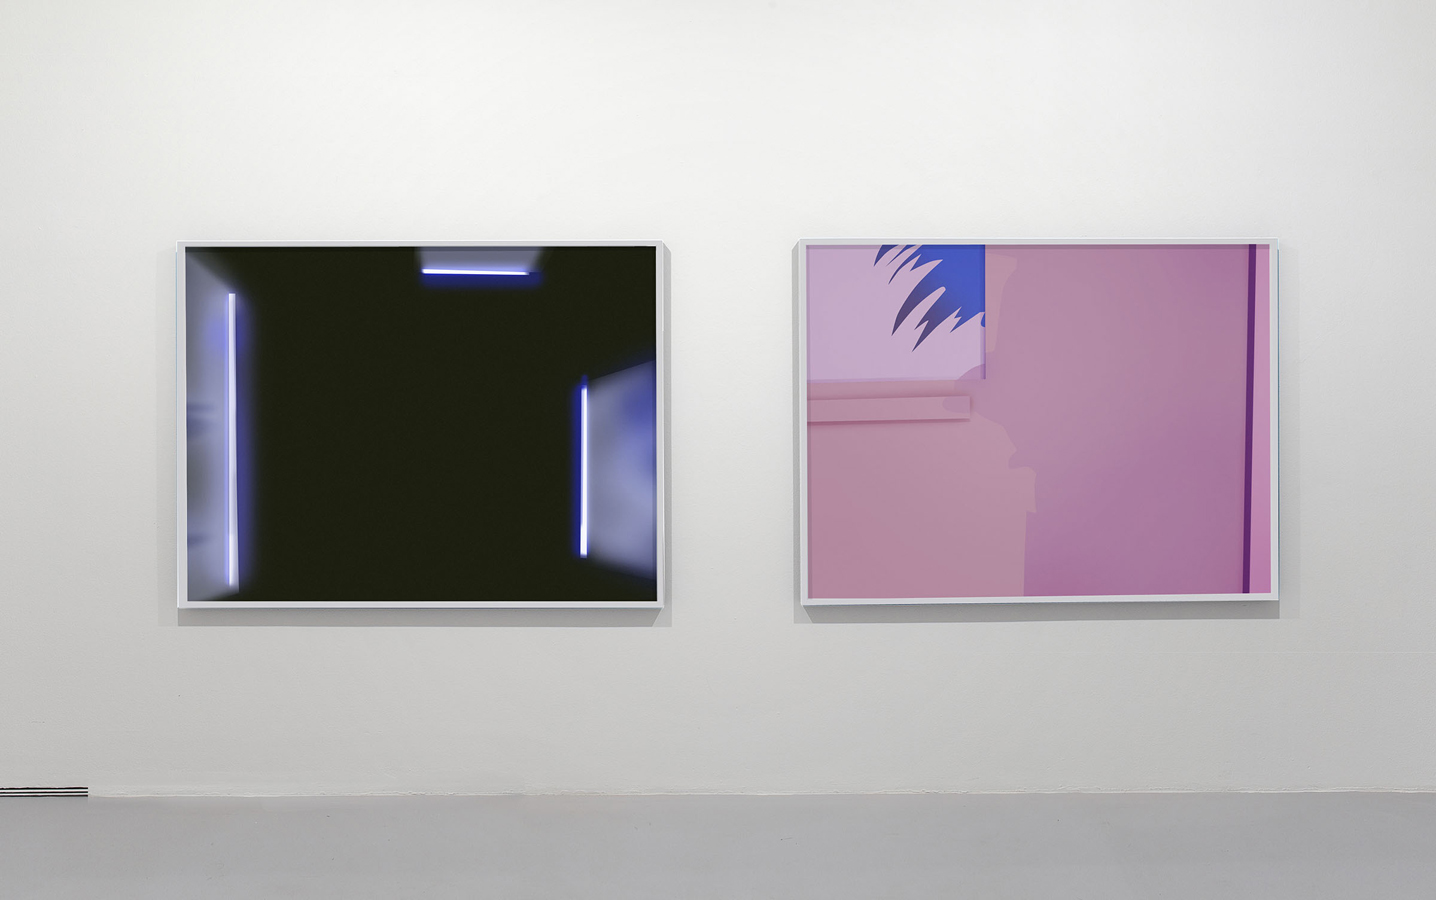 Chris Coy, Pink Cartoon Painting, Bl, 2012 Chromogenic print Installation view. Courtesy of Honor Fraser Gallery.